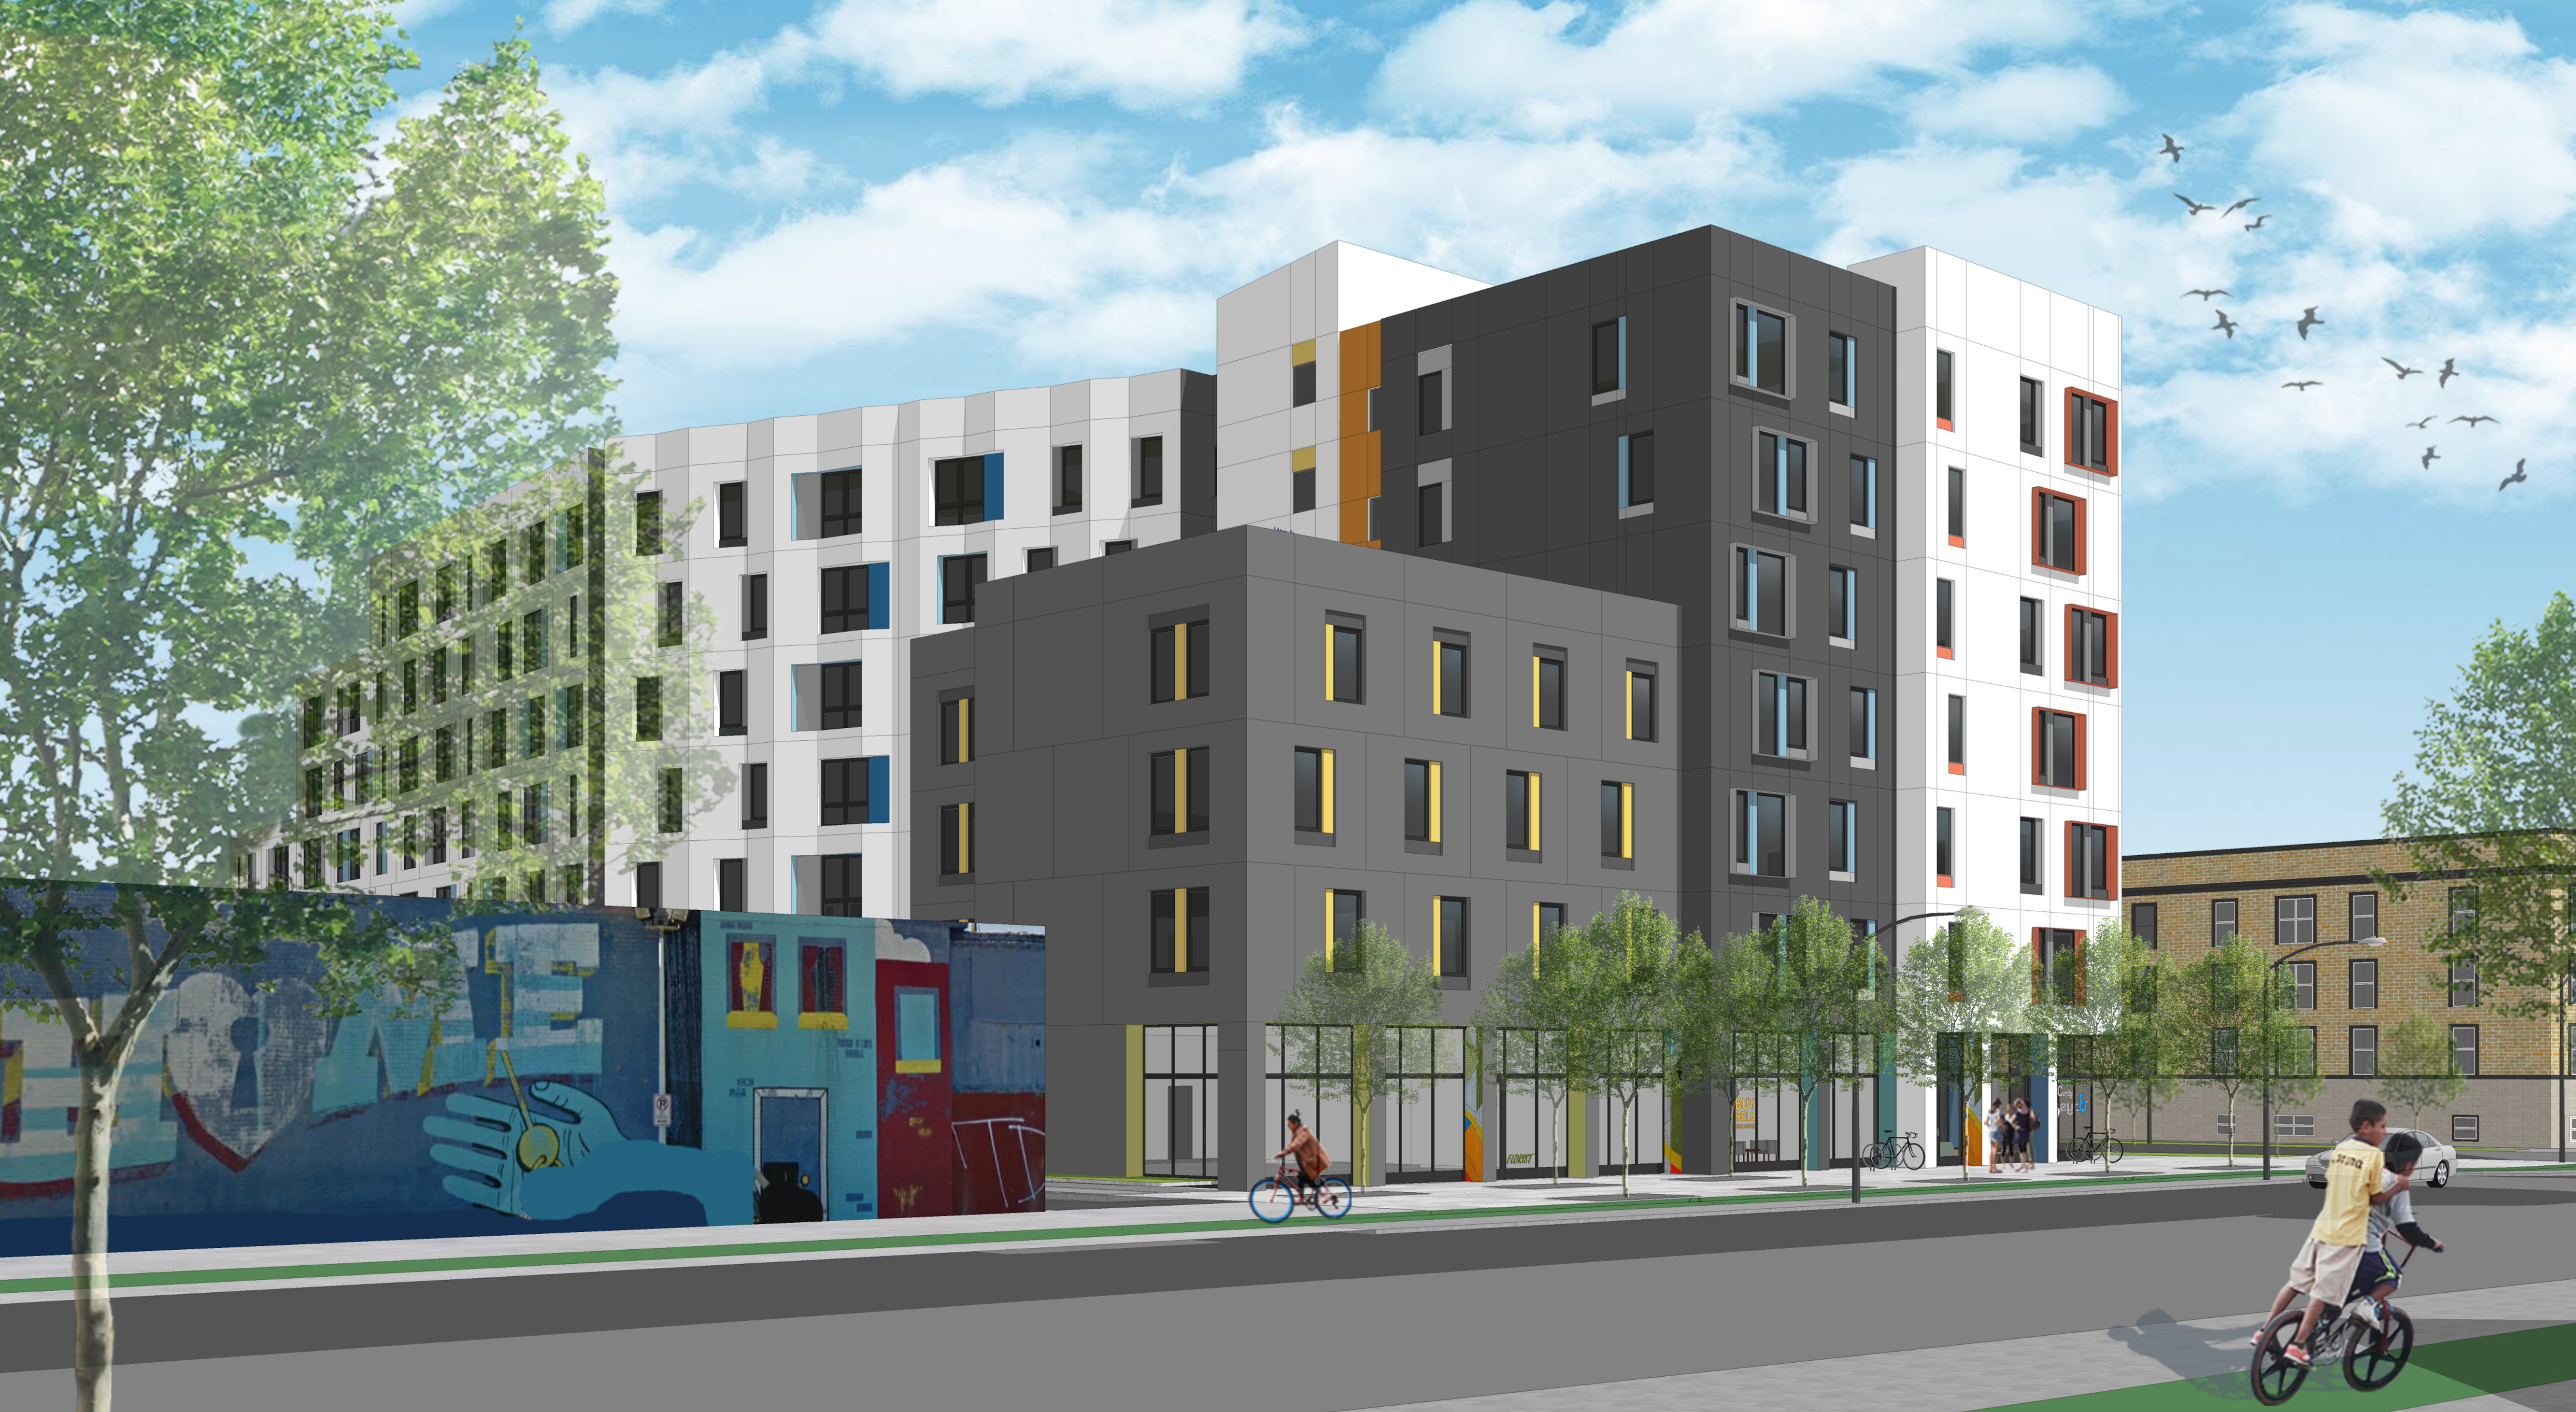 In Logan Square, Bickerdike Redevelopment says it expects to break ground soon on a 100-unit, affordable residential project, as shown in this rendering.